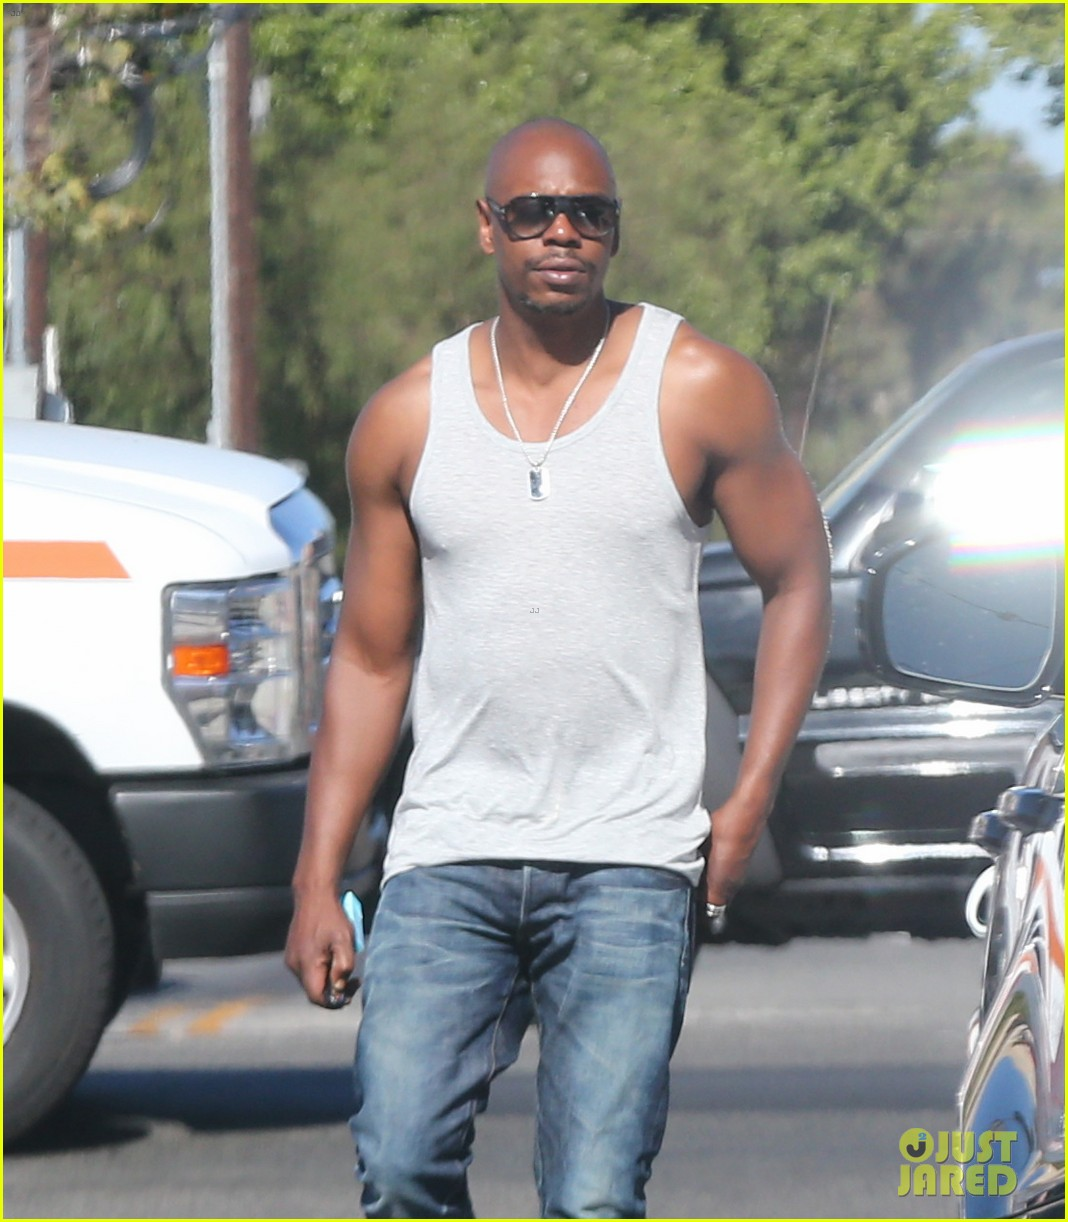 Clinton Chappaqua House Dave Chappelle Shows Off His Buff Biceps In A Tank Shirt